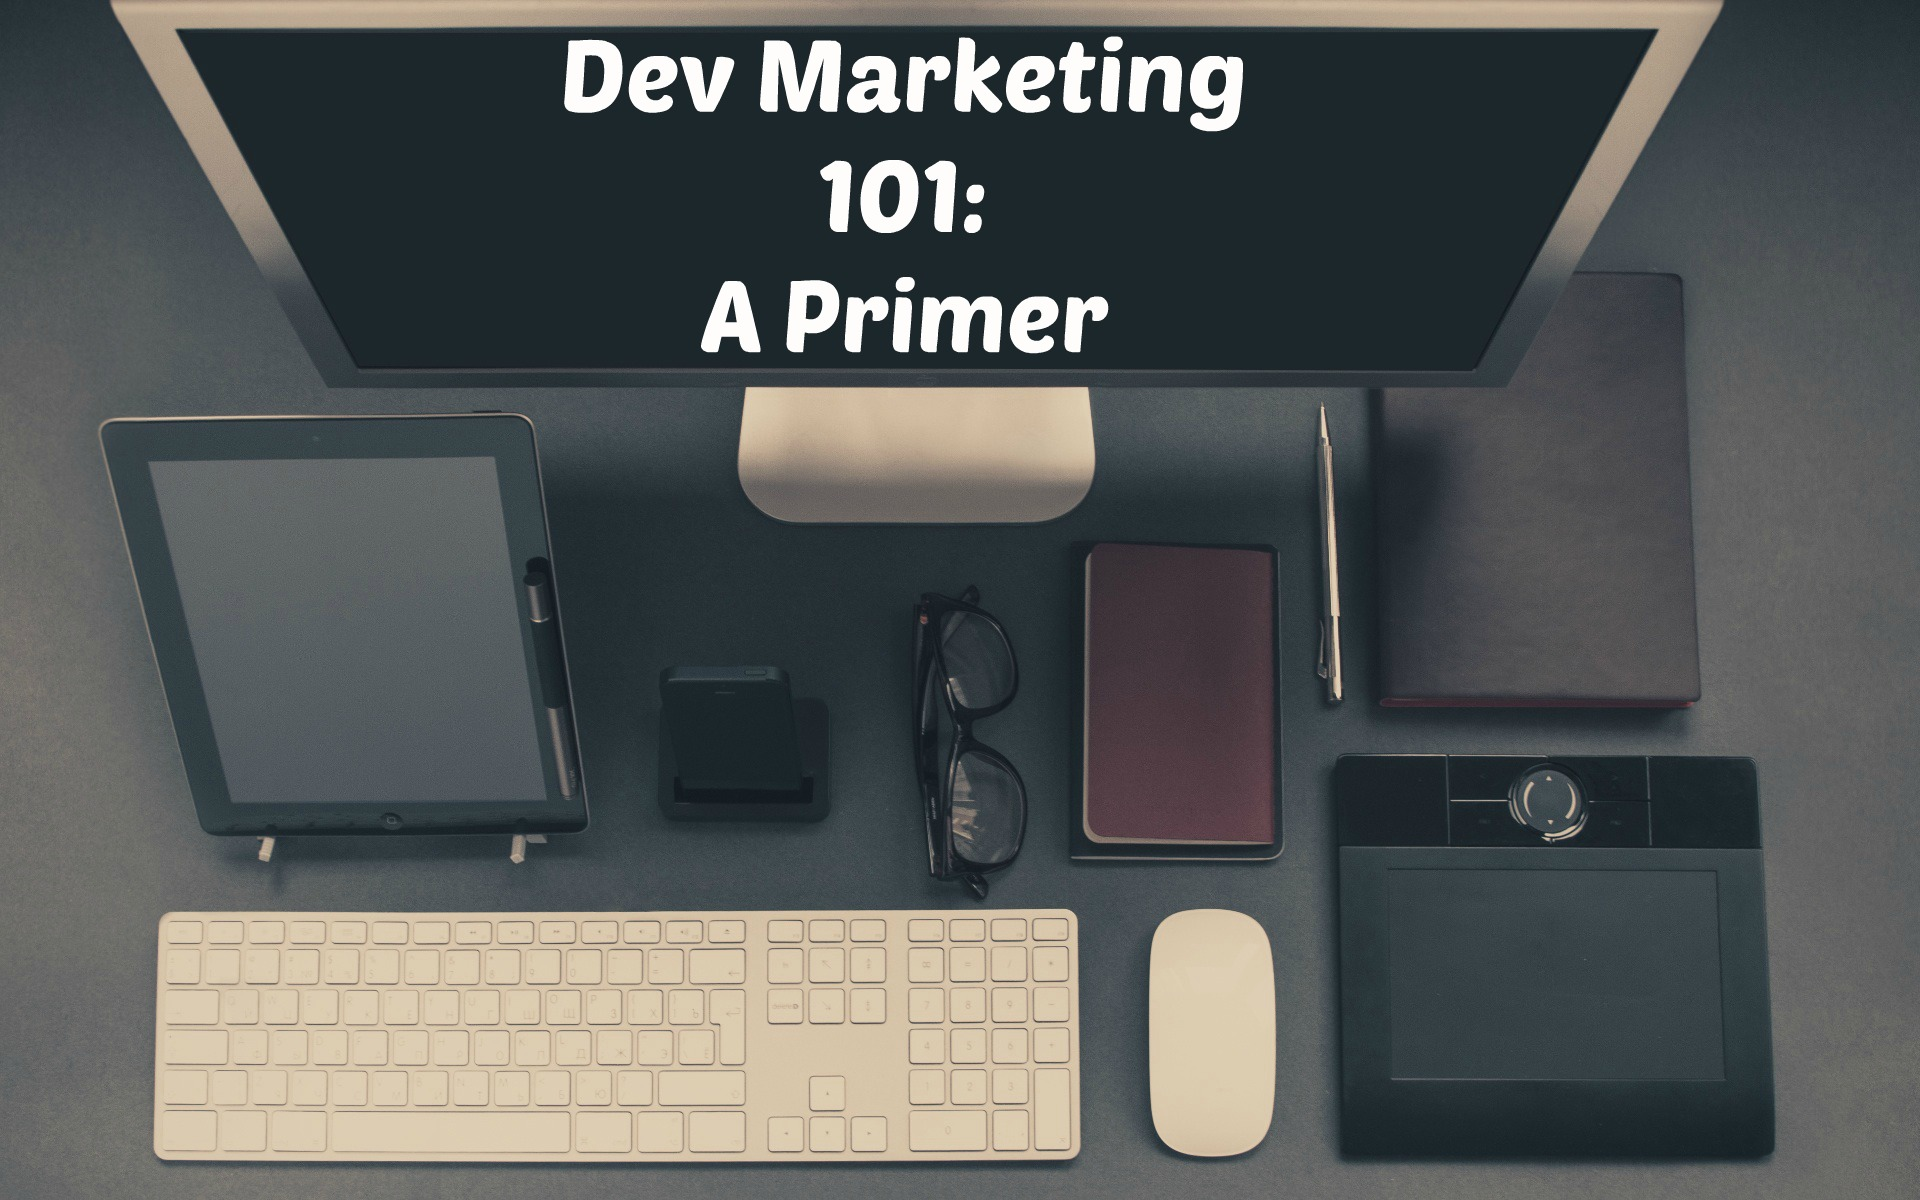 Dev Marketing Primer